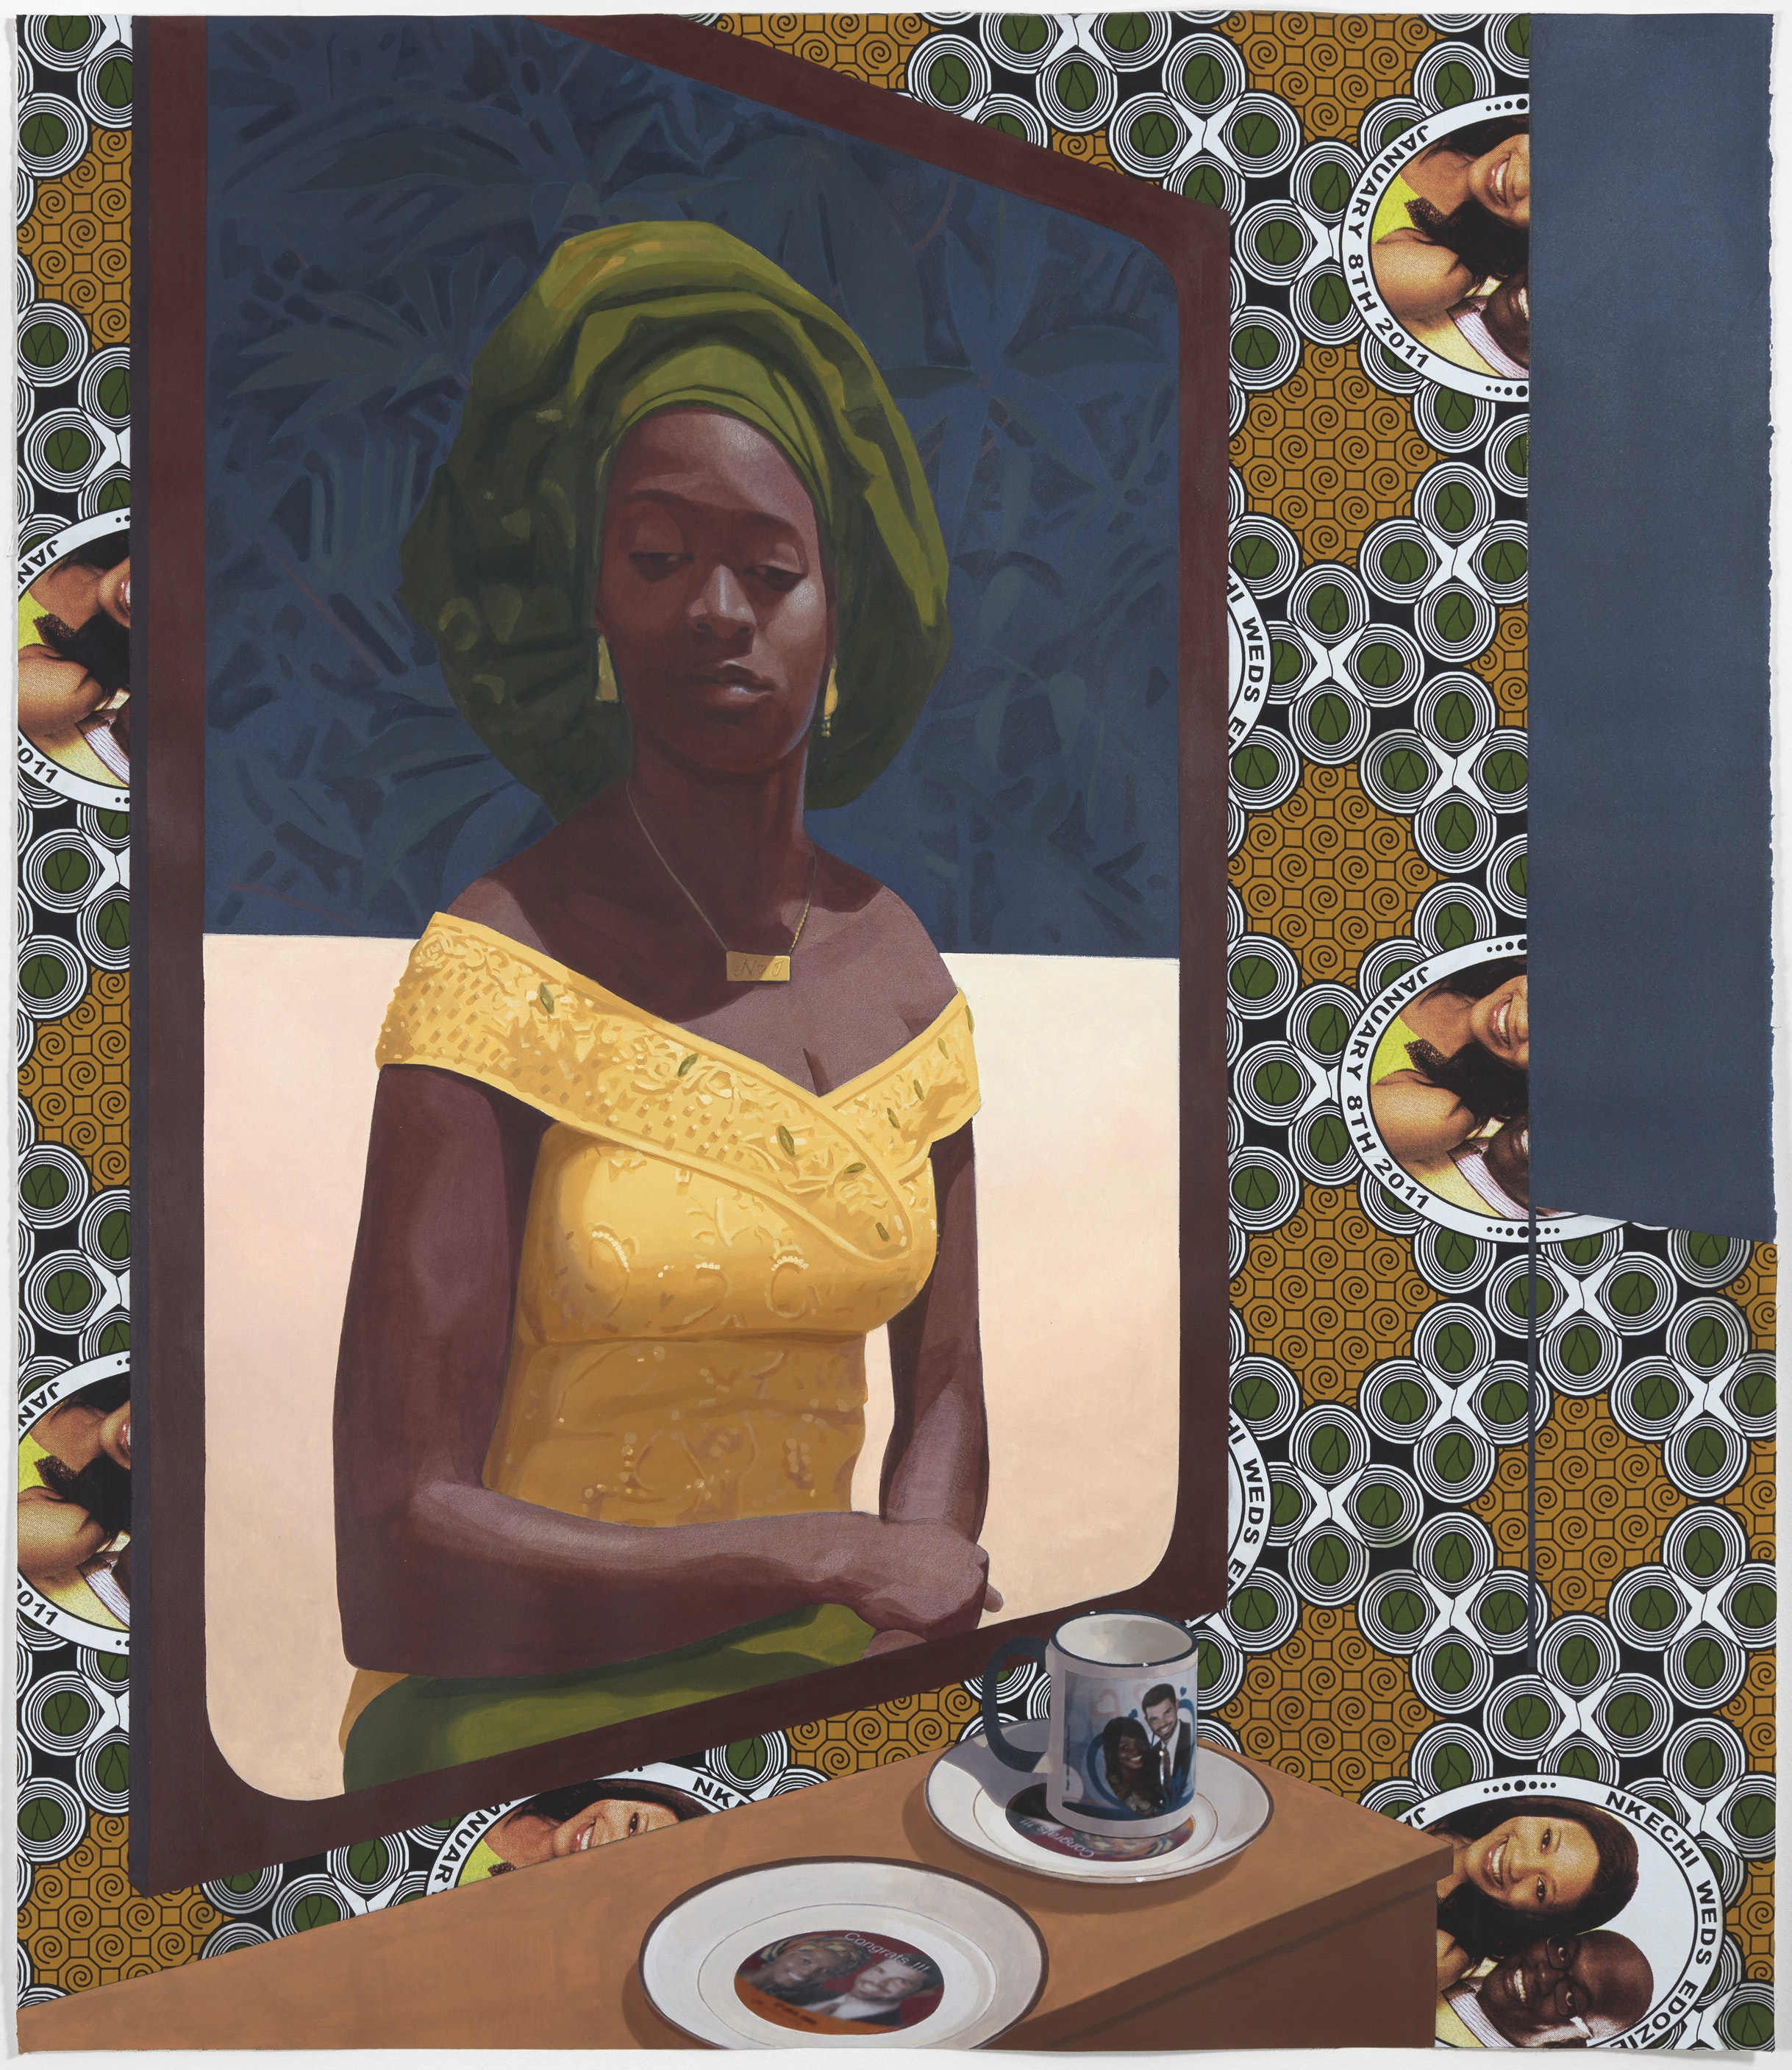 Crosby combines collage, acrylic paints, and traditional West African fabrics in her mixed-media works.